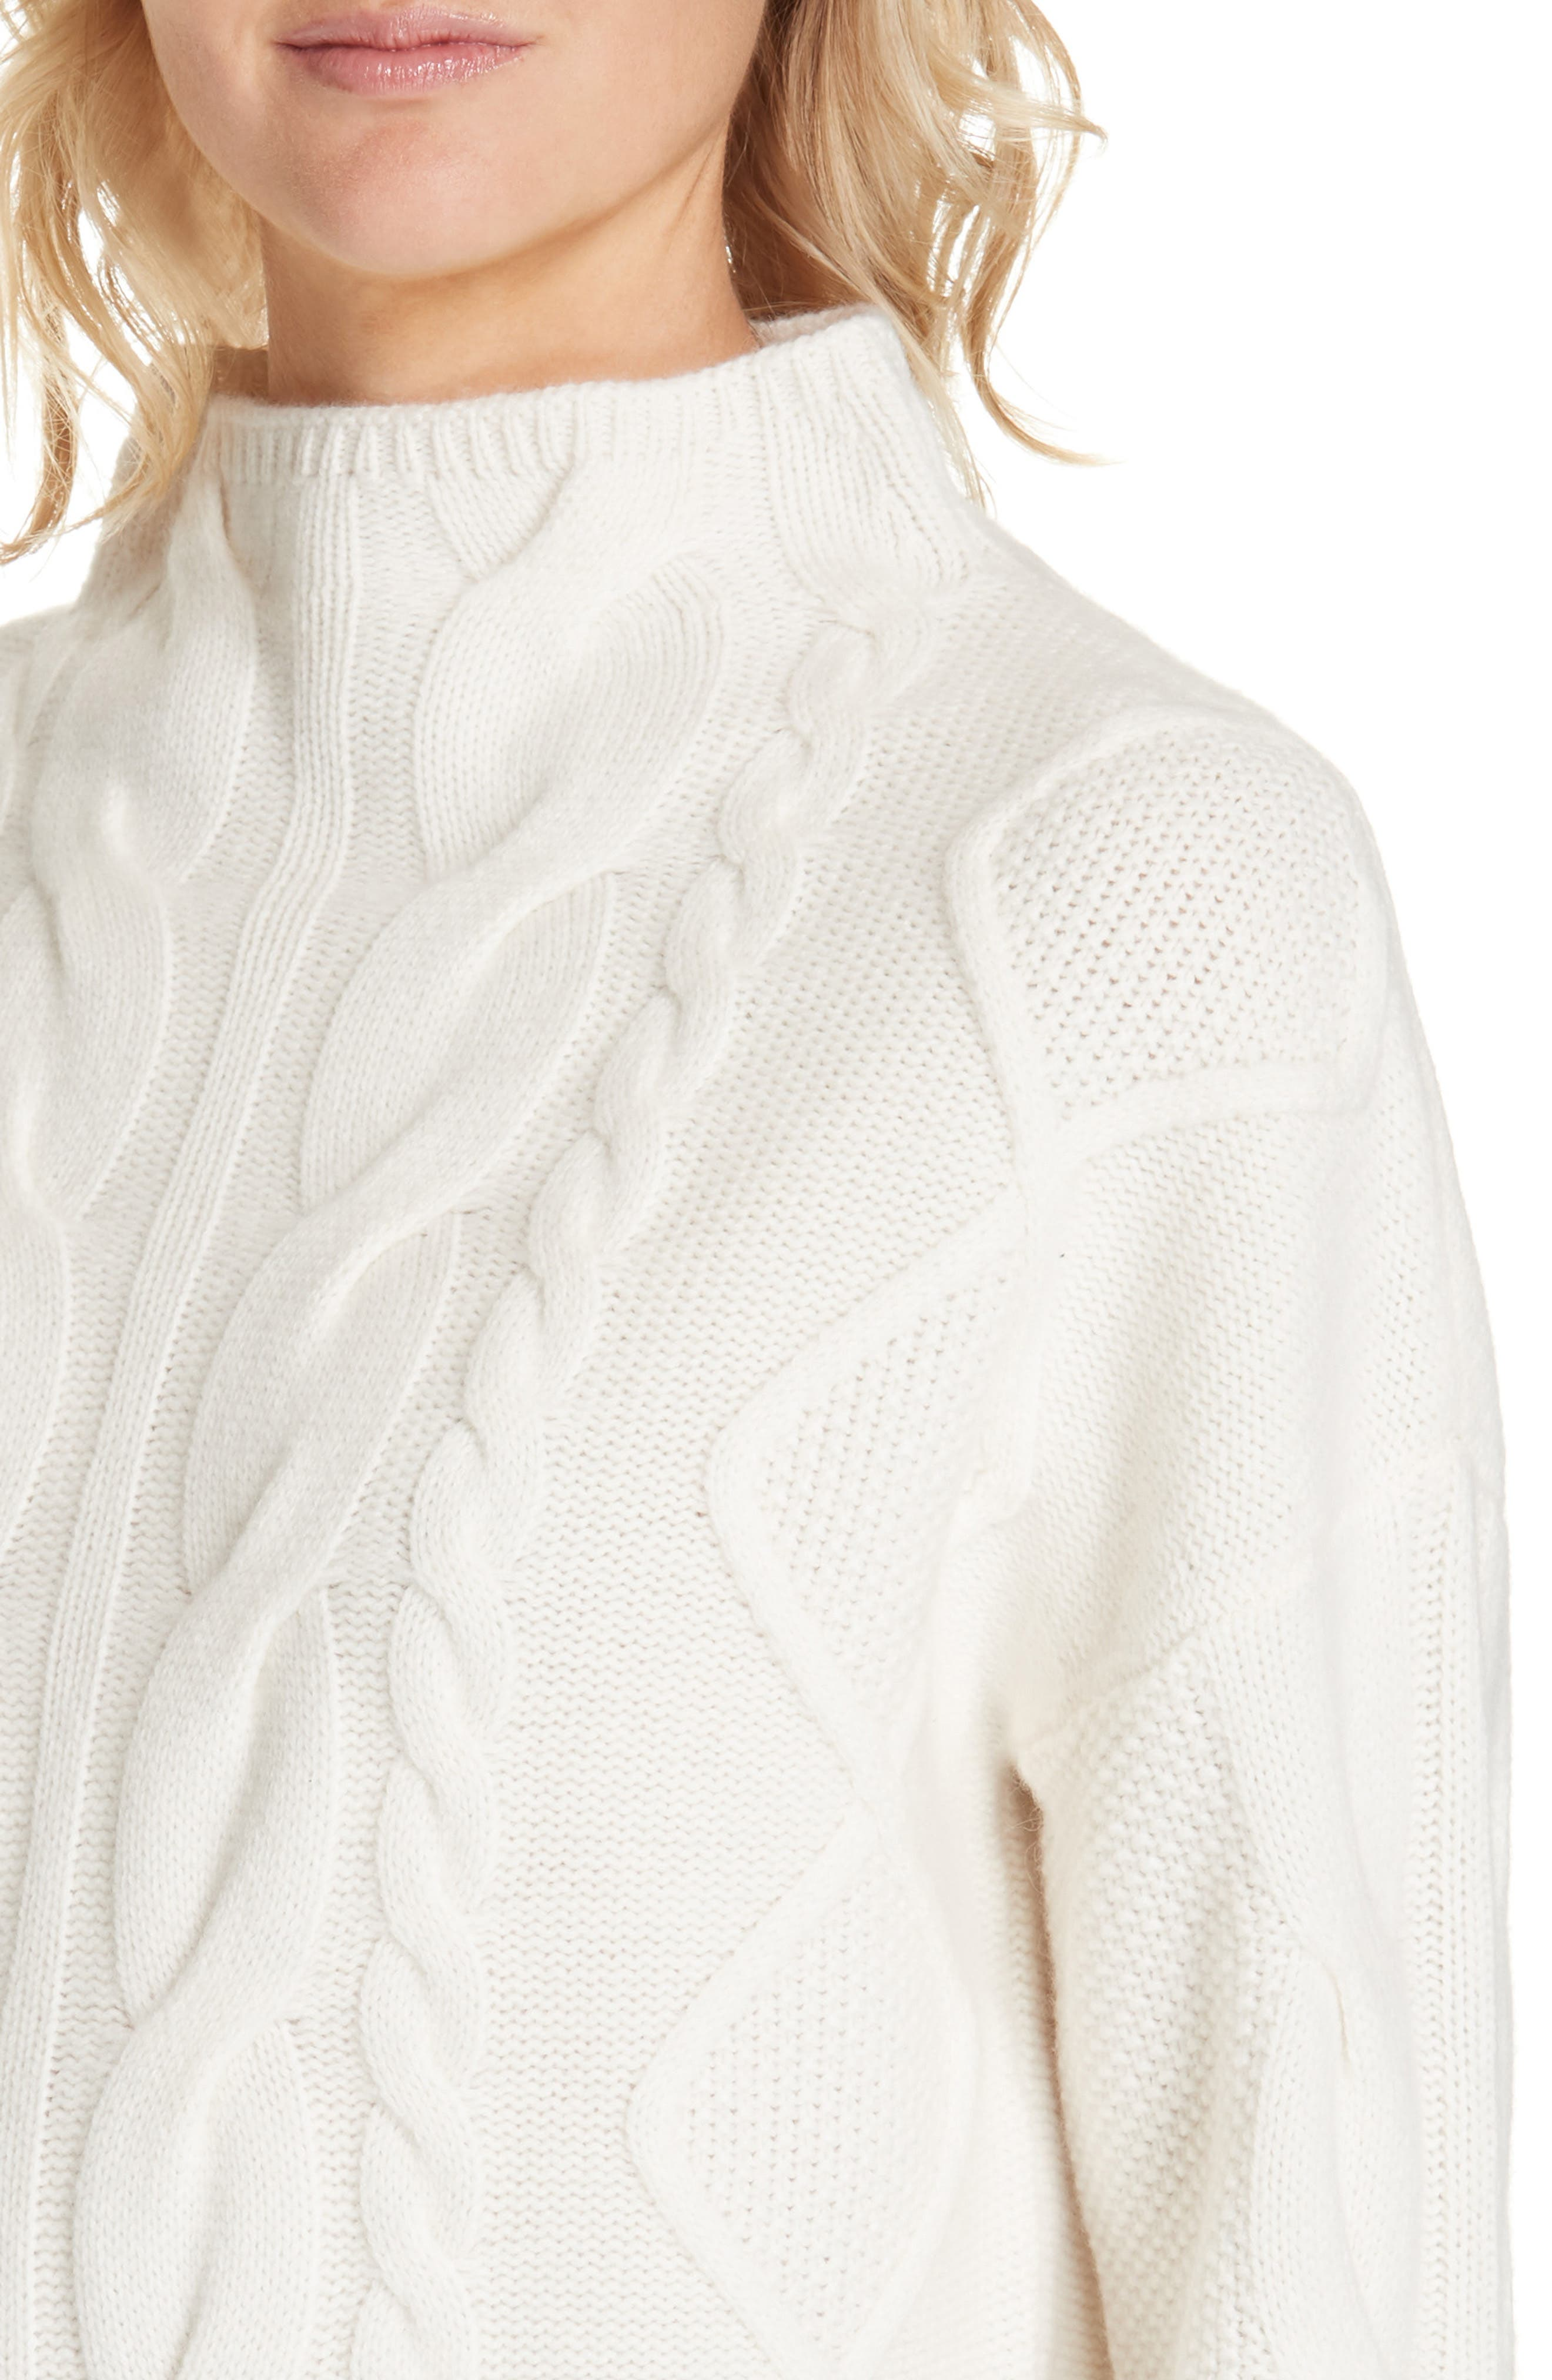 NORDSTROM SIGNATURE, Cable Cashmere Sweater, Alternate thumbnail 4, color, 900